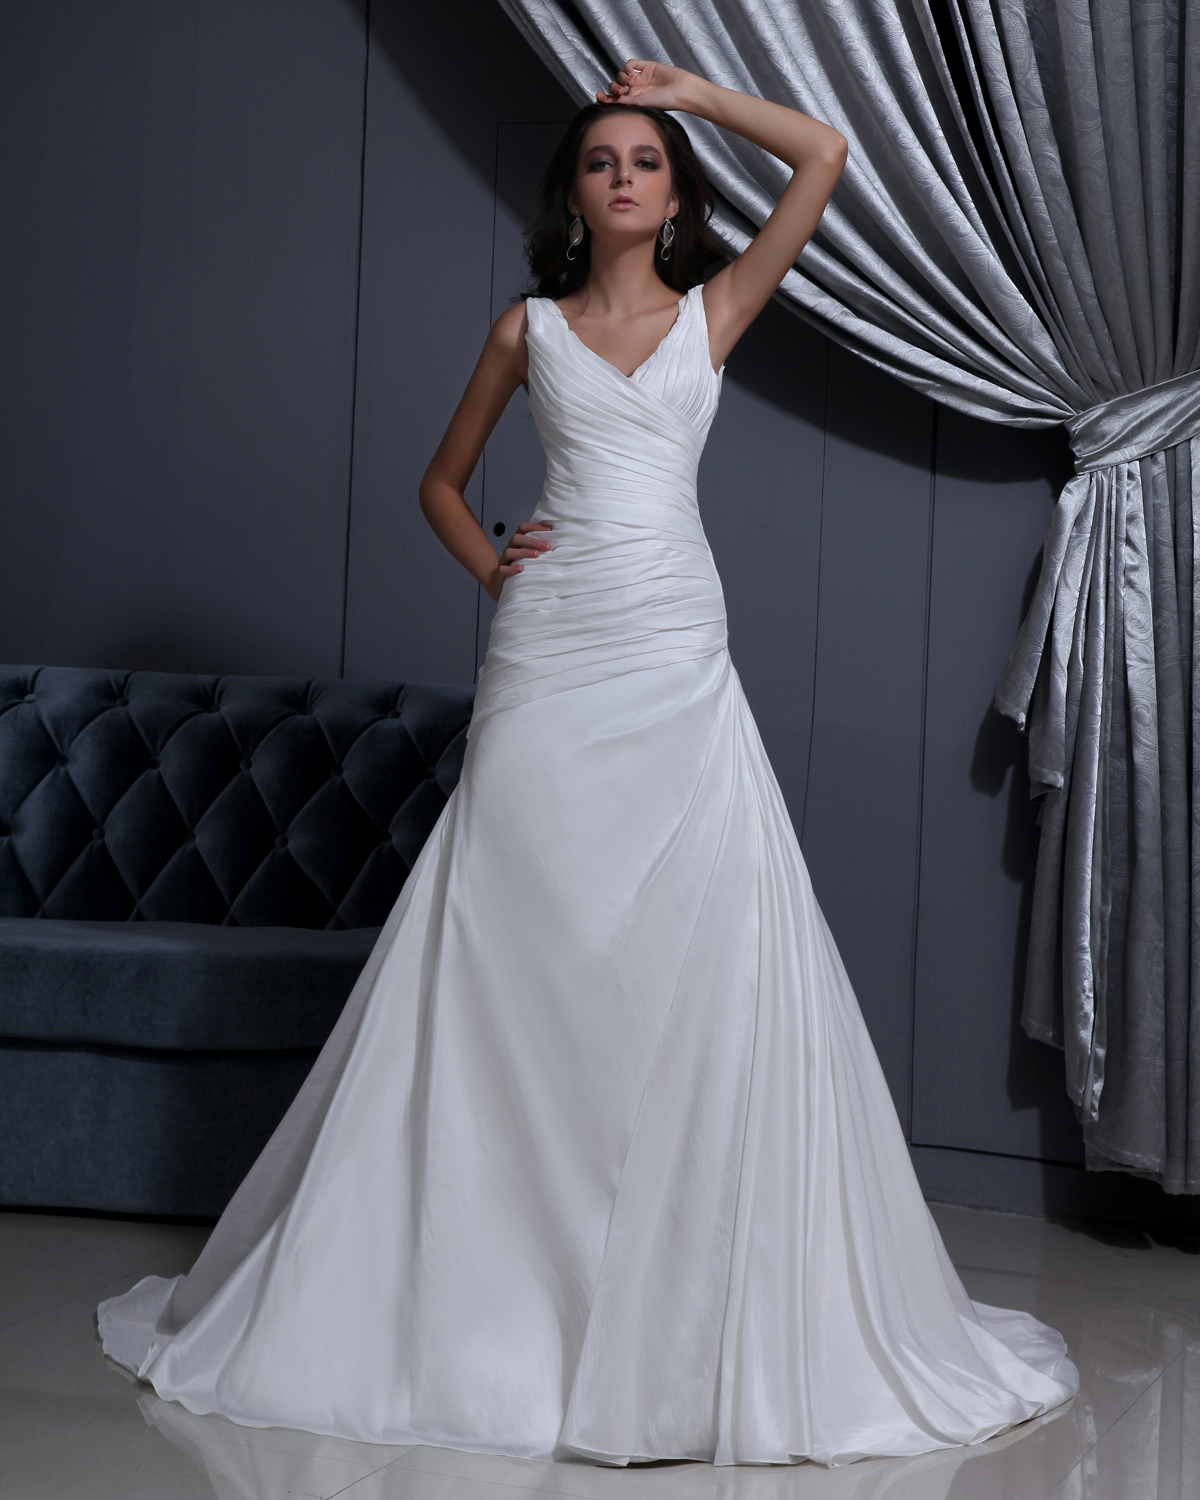 Wedding dresses for petite women women dresses for Women s dresses for weddings